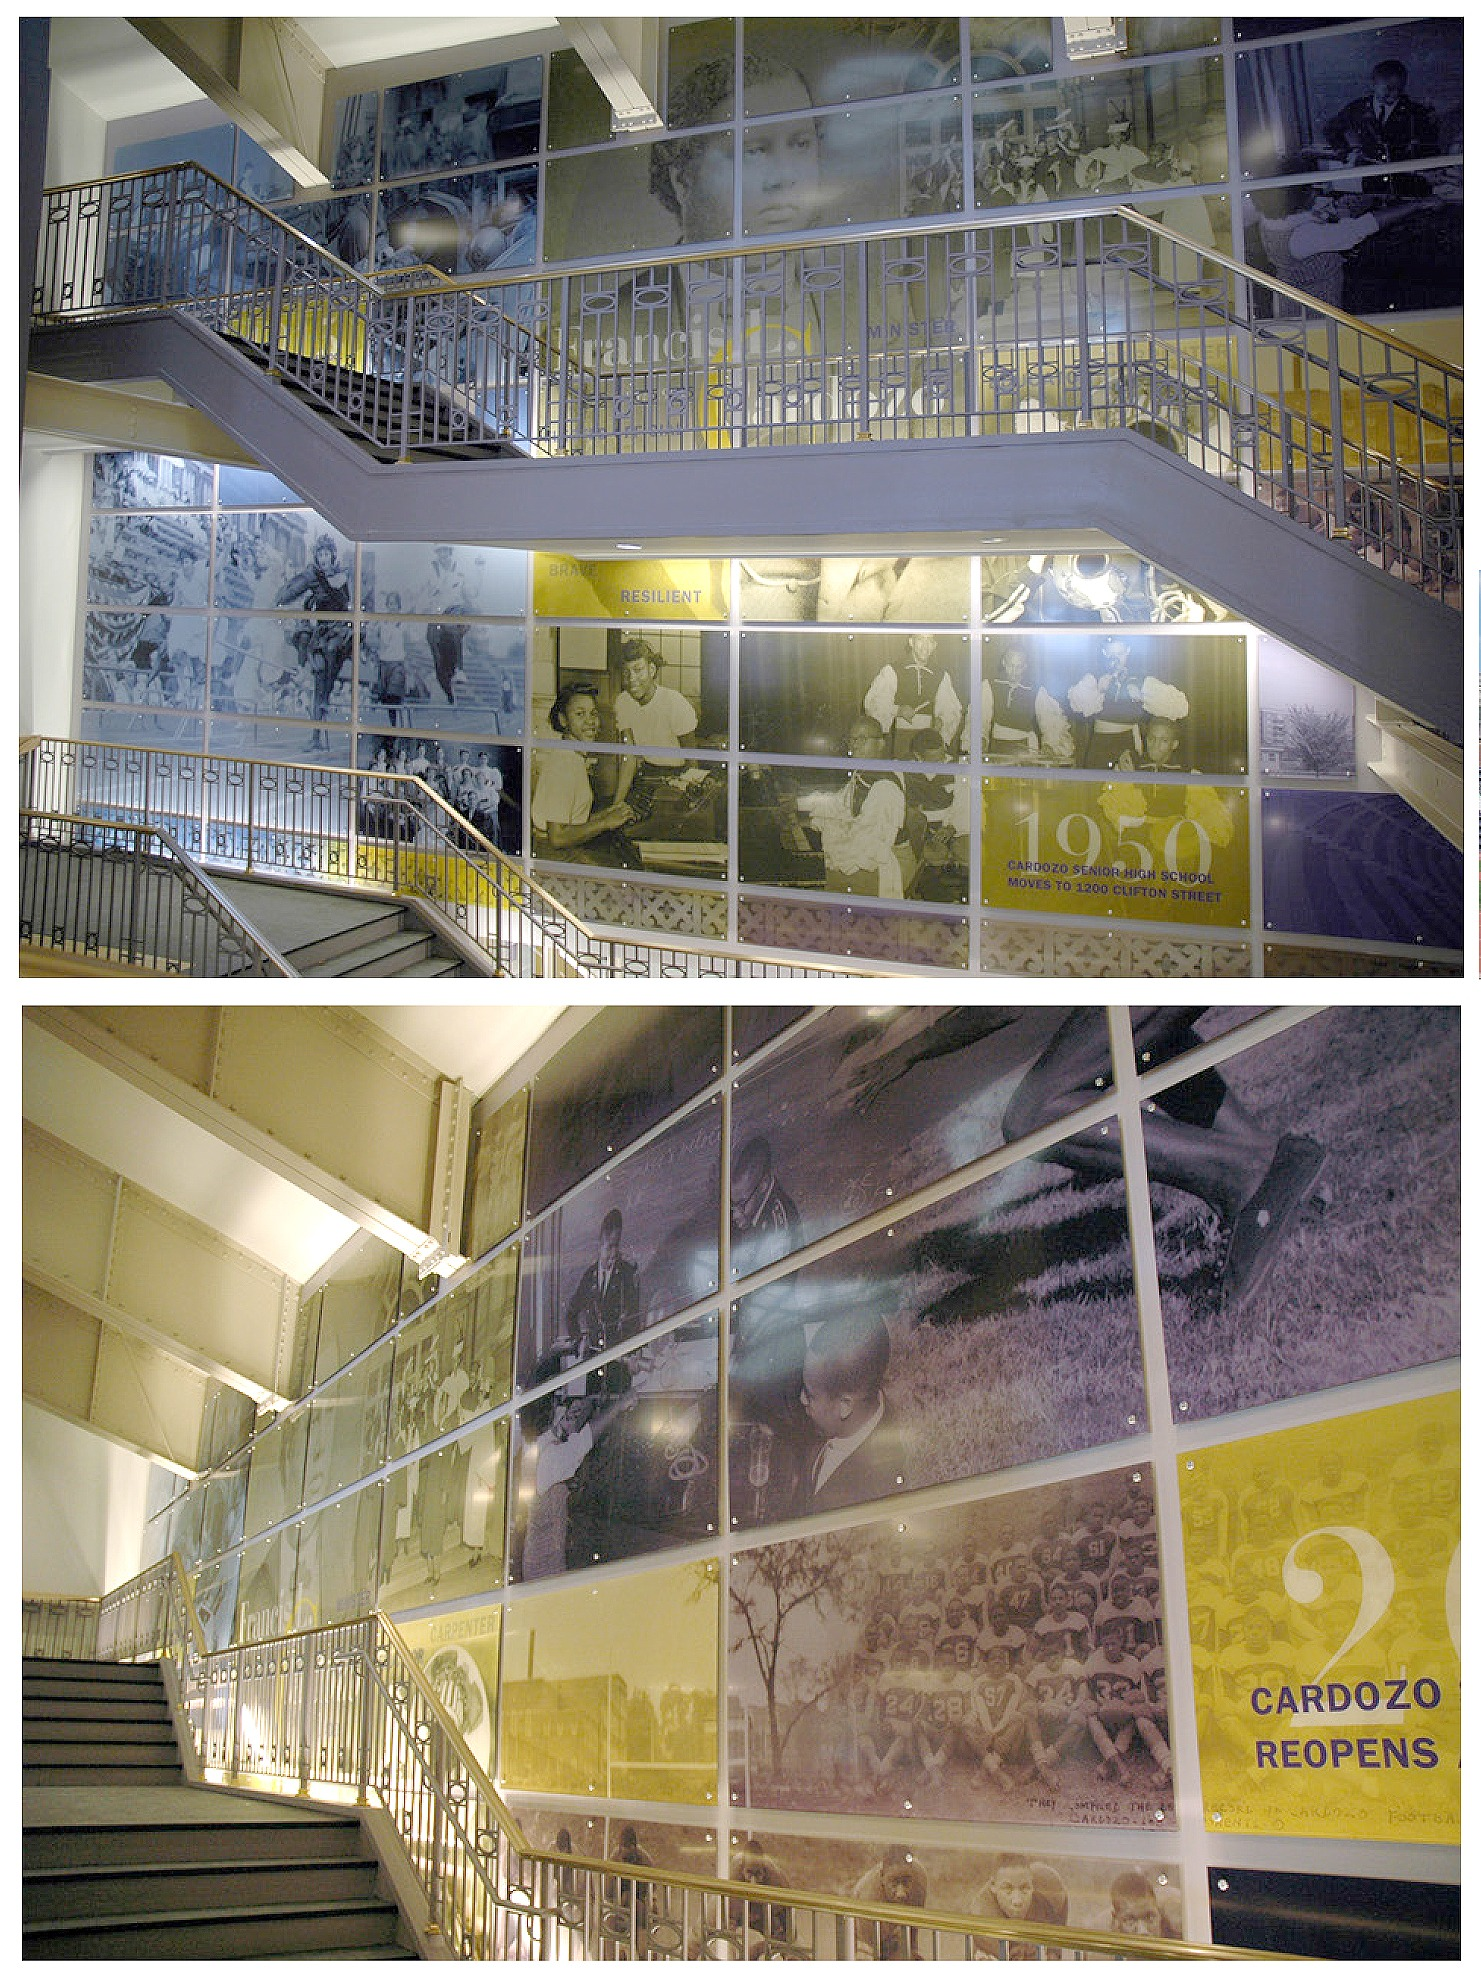 Large Scale Stairs Historical Graphic for Francis L. Cardozo Education Campus